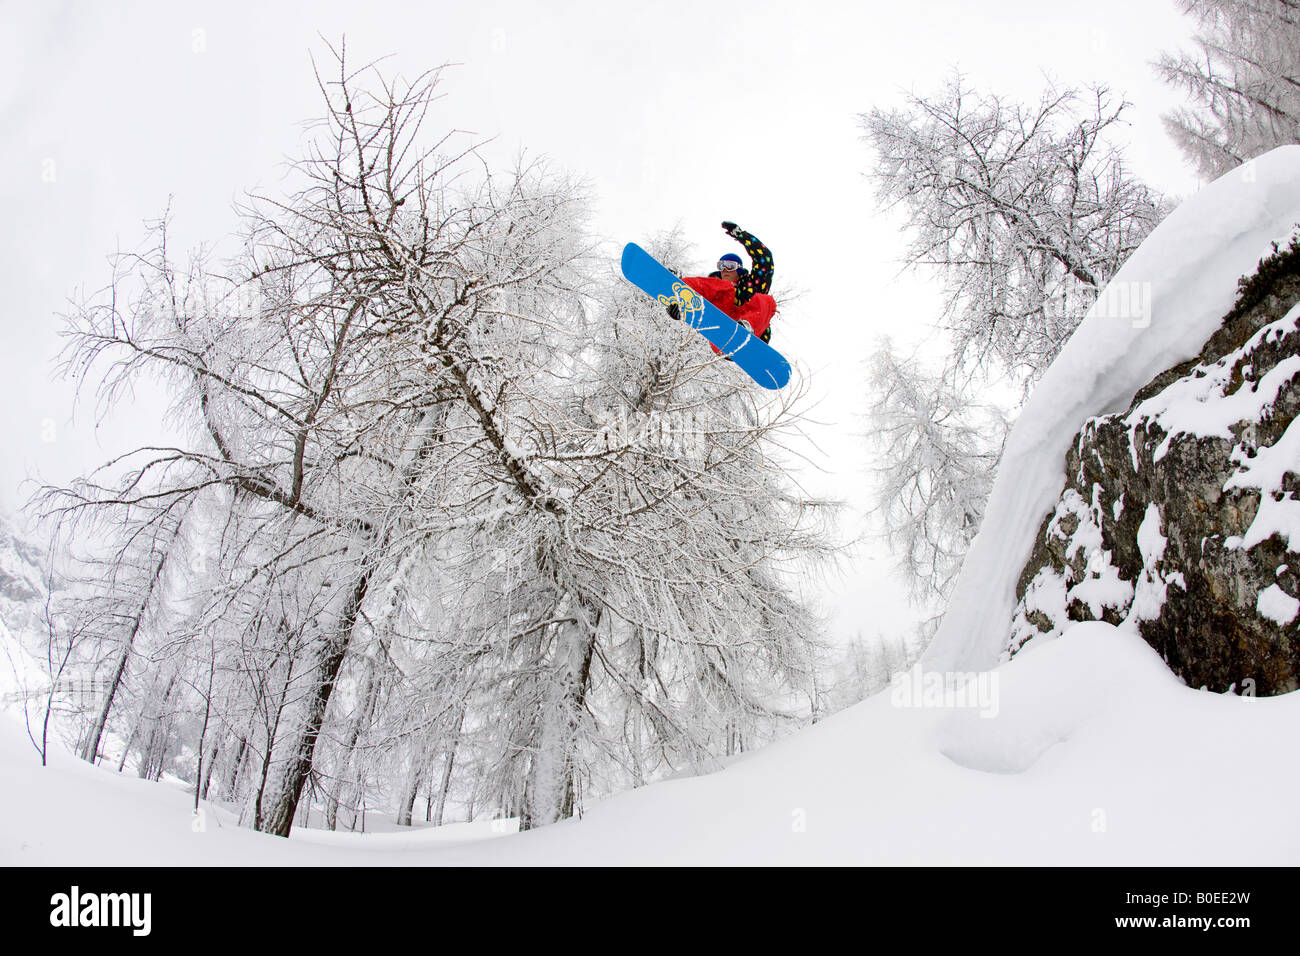 Snowboarder jumps from a rock and over branch. - Stock Image